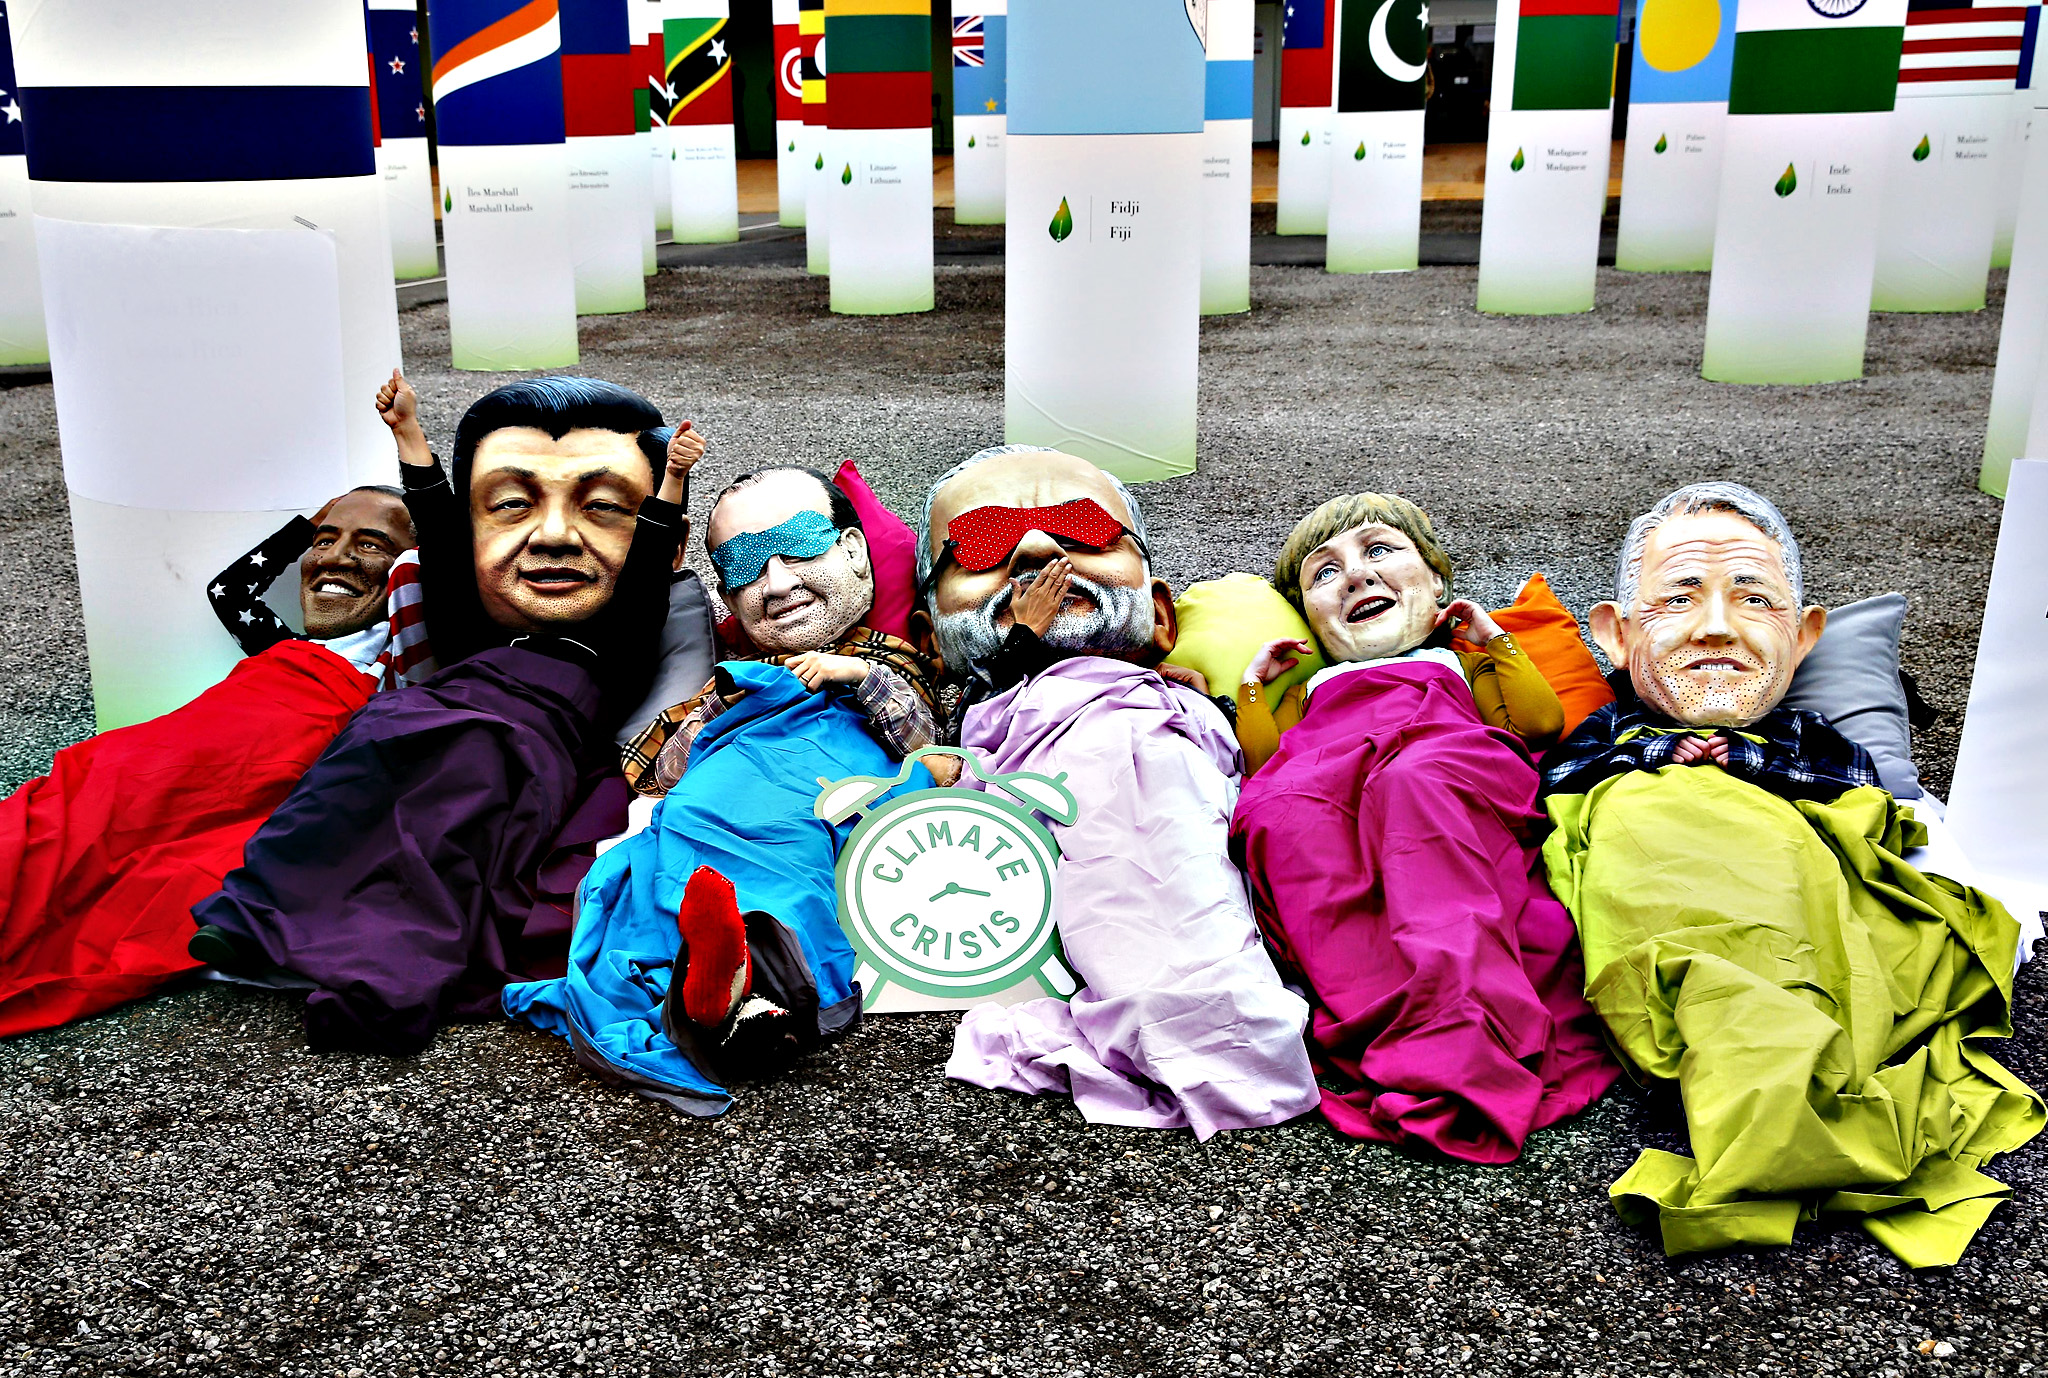 Demonstrators from NGO Oxfam wear big heads of world leaders, US President Barack Obama, Chinese President Xi Jinping, French President Francois Hollande, Indian Prime Minister Narendra Modi, German Chancellor Angela Merkel and Australian Prime Minister Malcolm Turnbull, in front of the COP21 conference center in Le Bourget, north of Paris, France, 10 December 2015. The 21st Conference of the Parties (COP21) is held in Paris from 30 November to 11 December aimed at reaching an international agreement to limit greenhouse gas emissions and curtail climate change